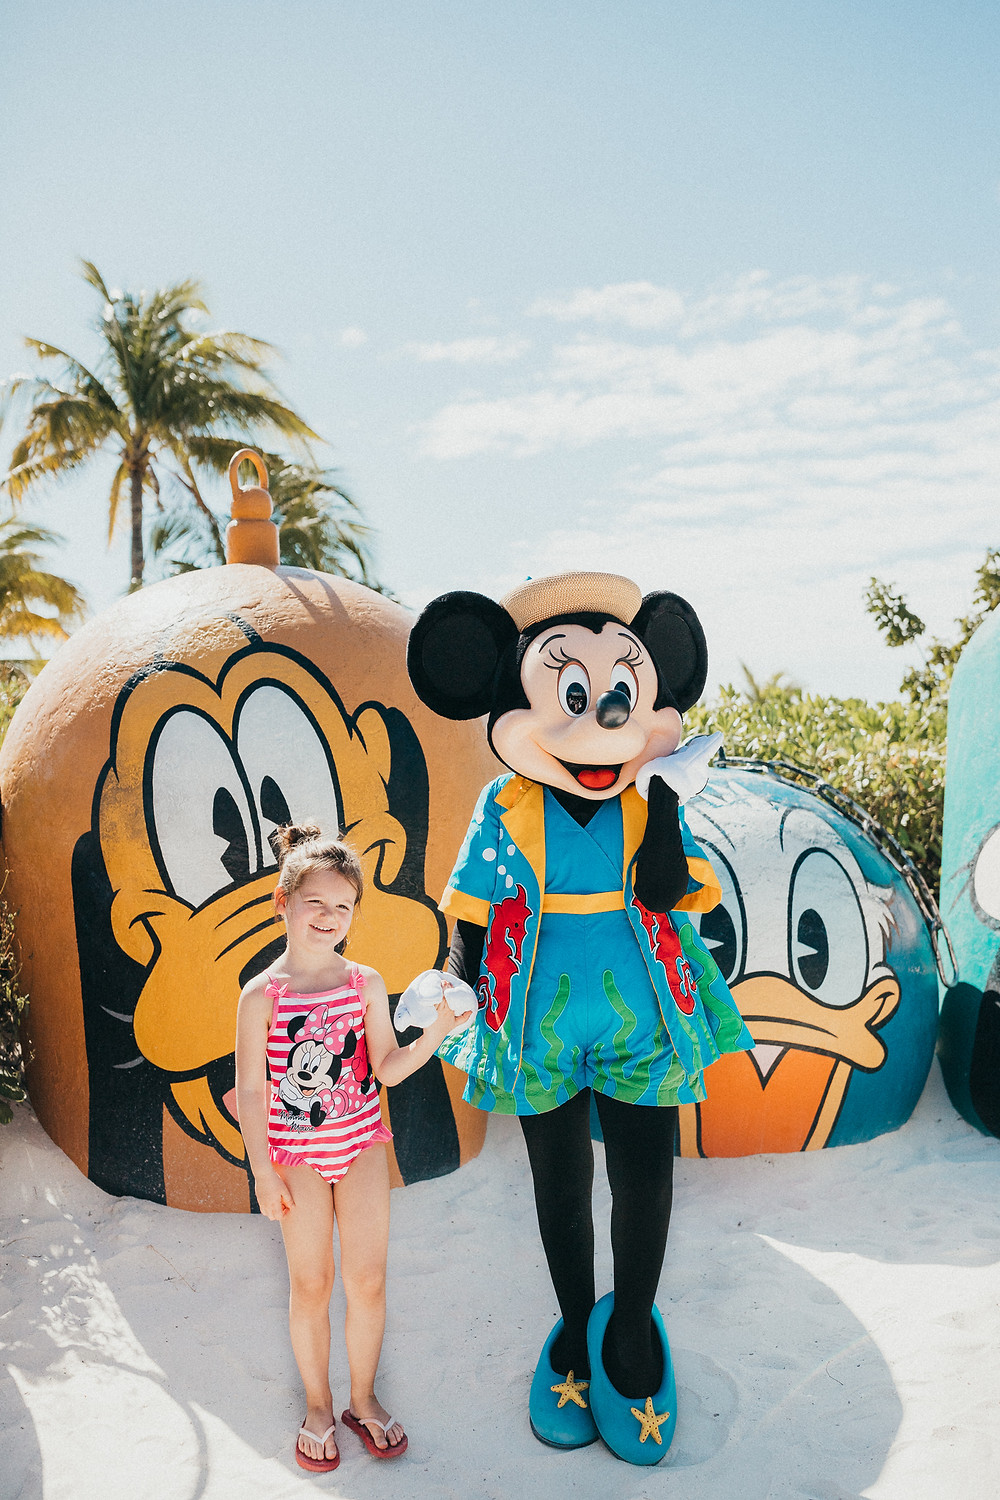 A little girl wearing a Minnie Mouse bathing suit standing with Minnie Mouse on the beach.